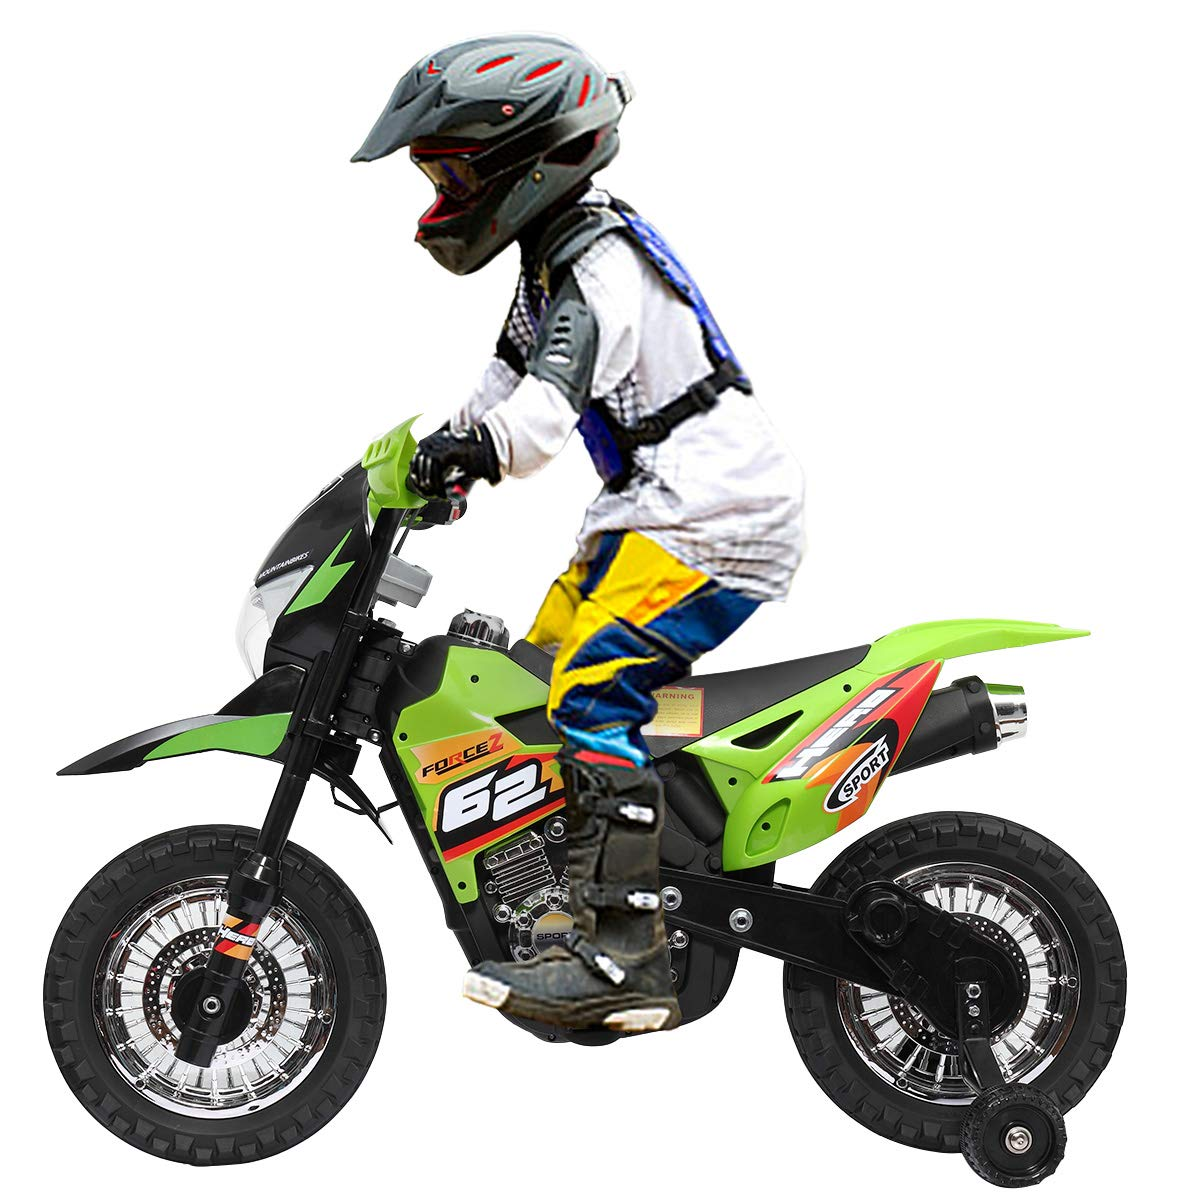 JAXPETY Green 6V Kids Ride On Motorcycle Toy for Kids